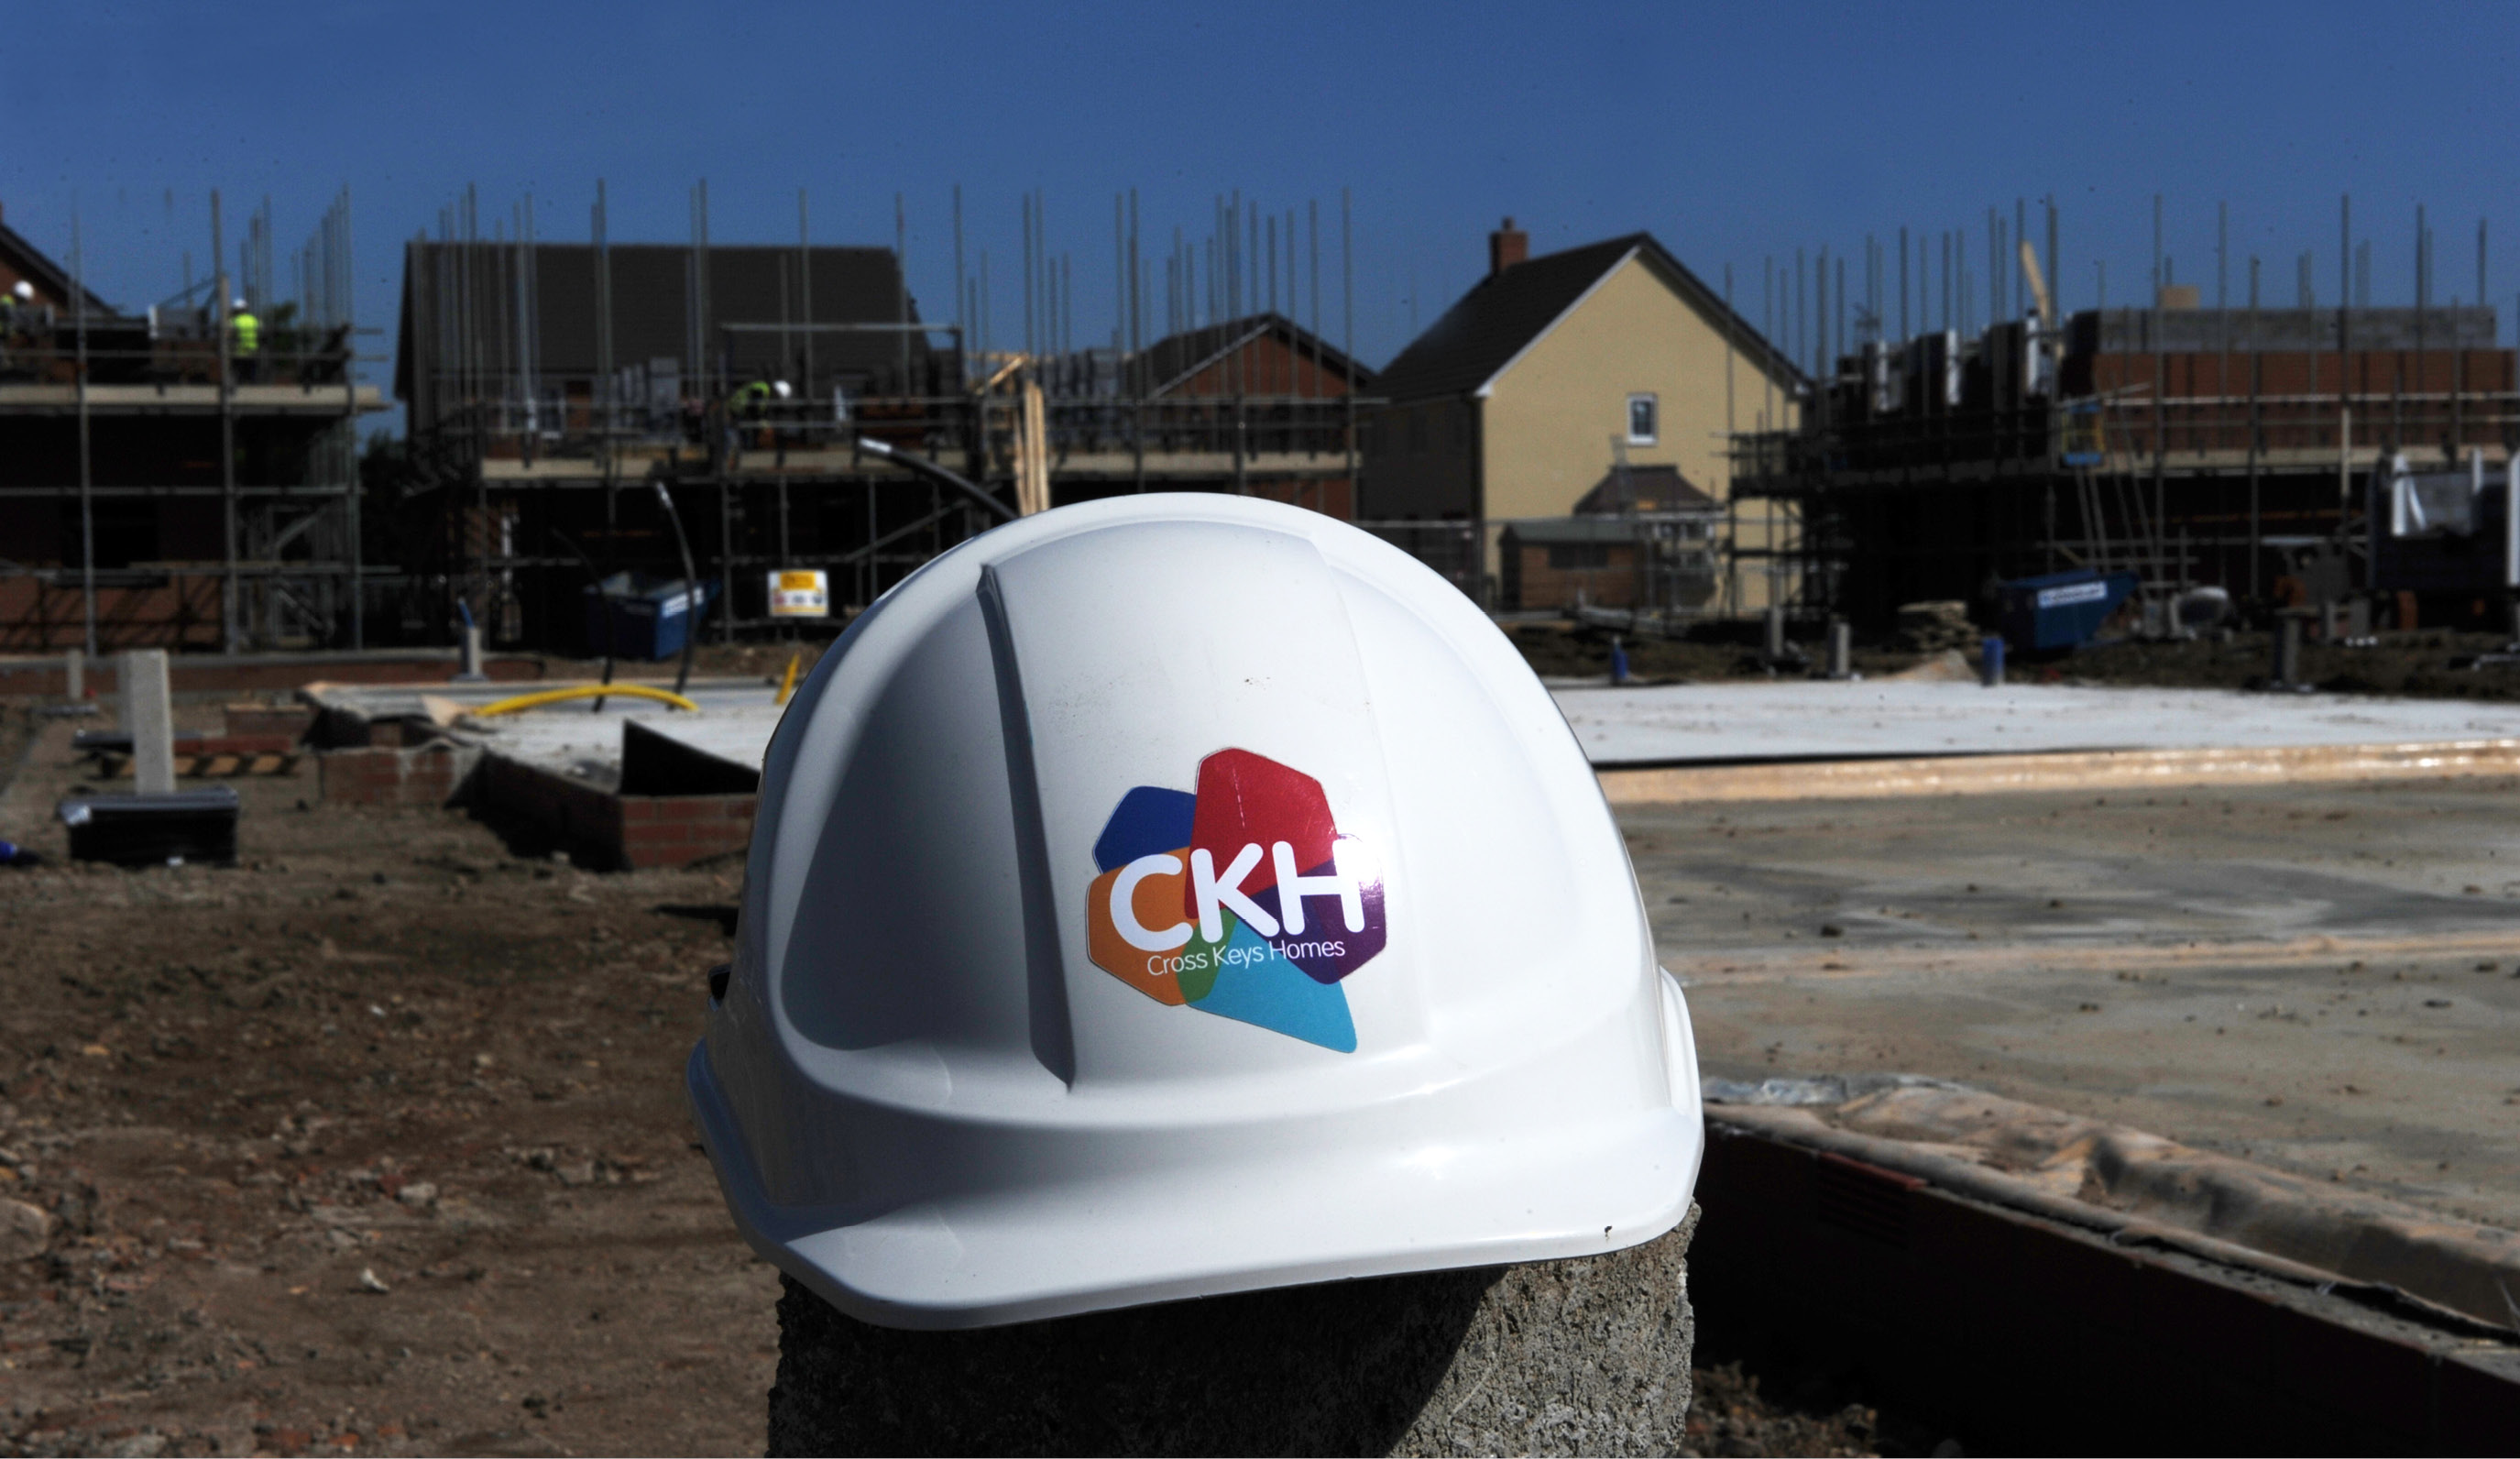 Once again CKH shows its determination to build more affordable homes